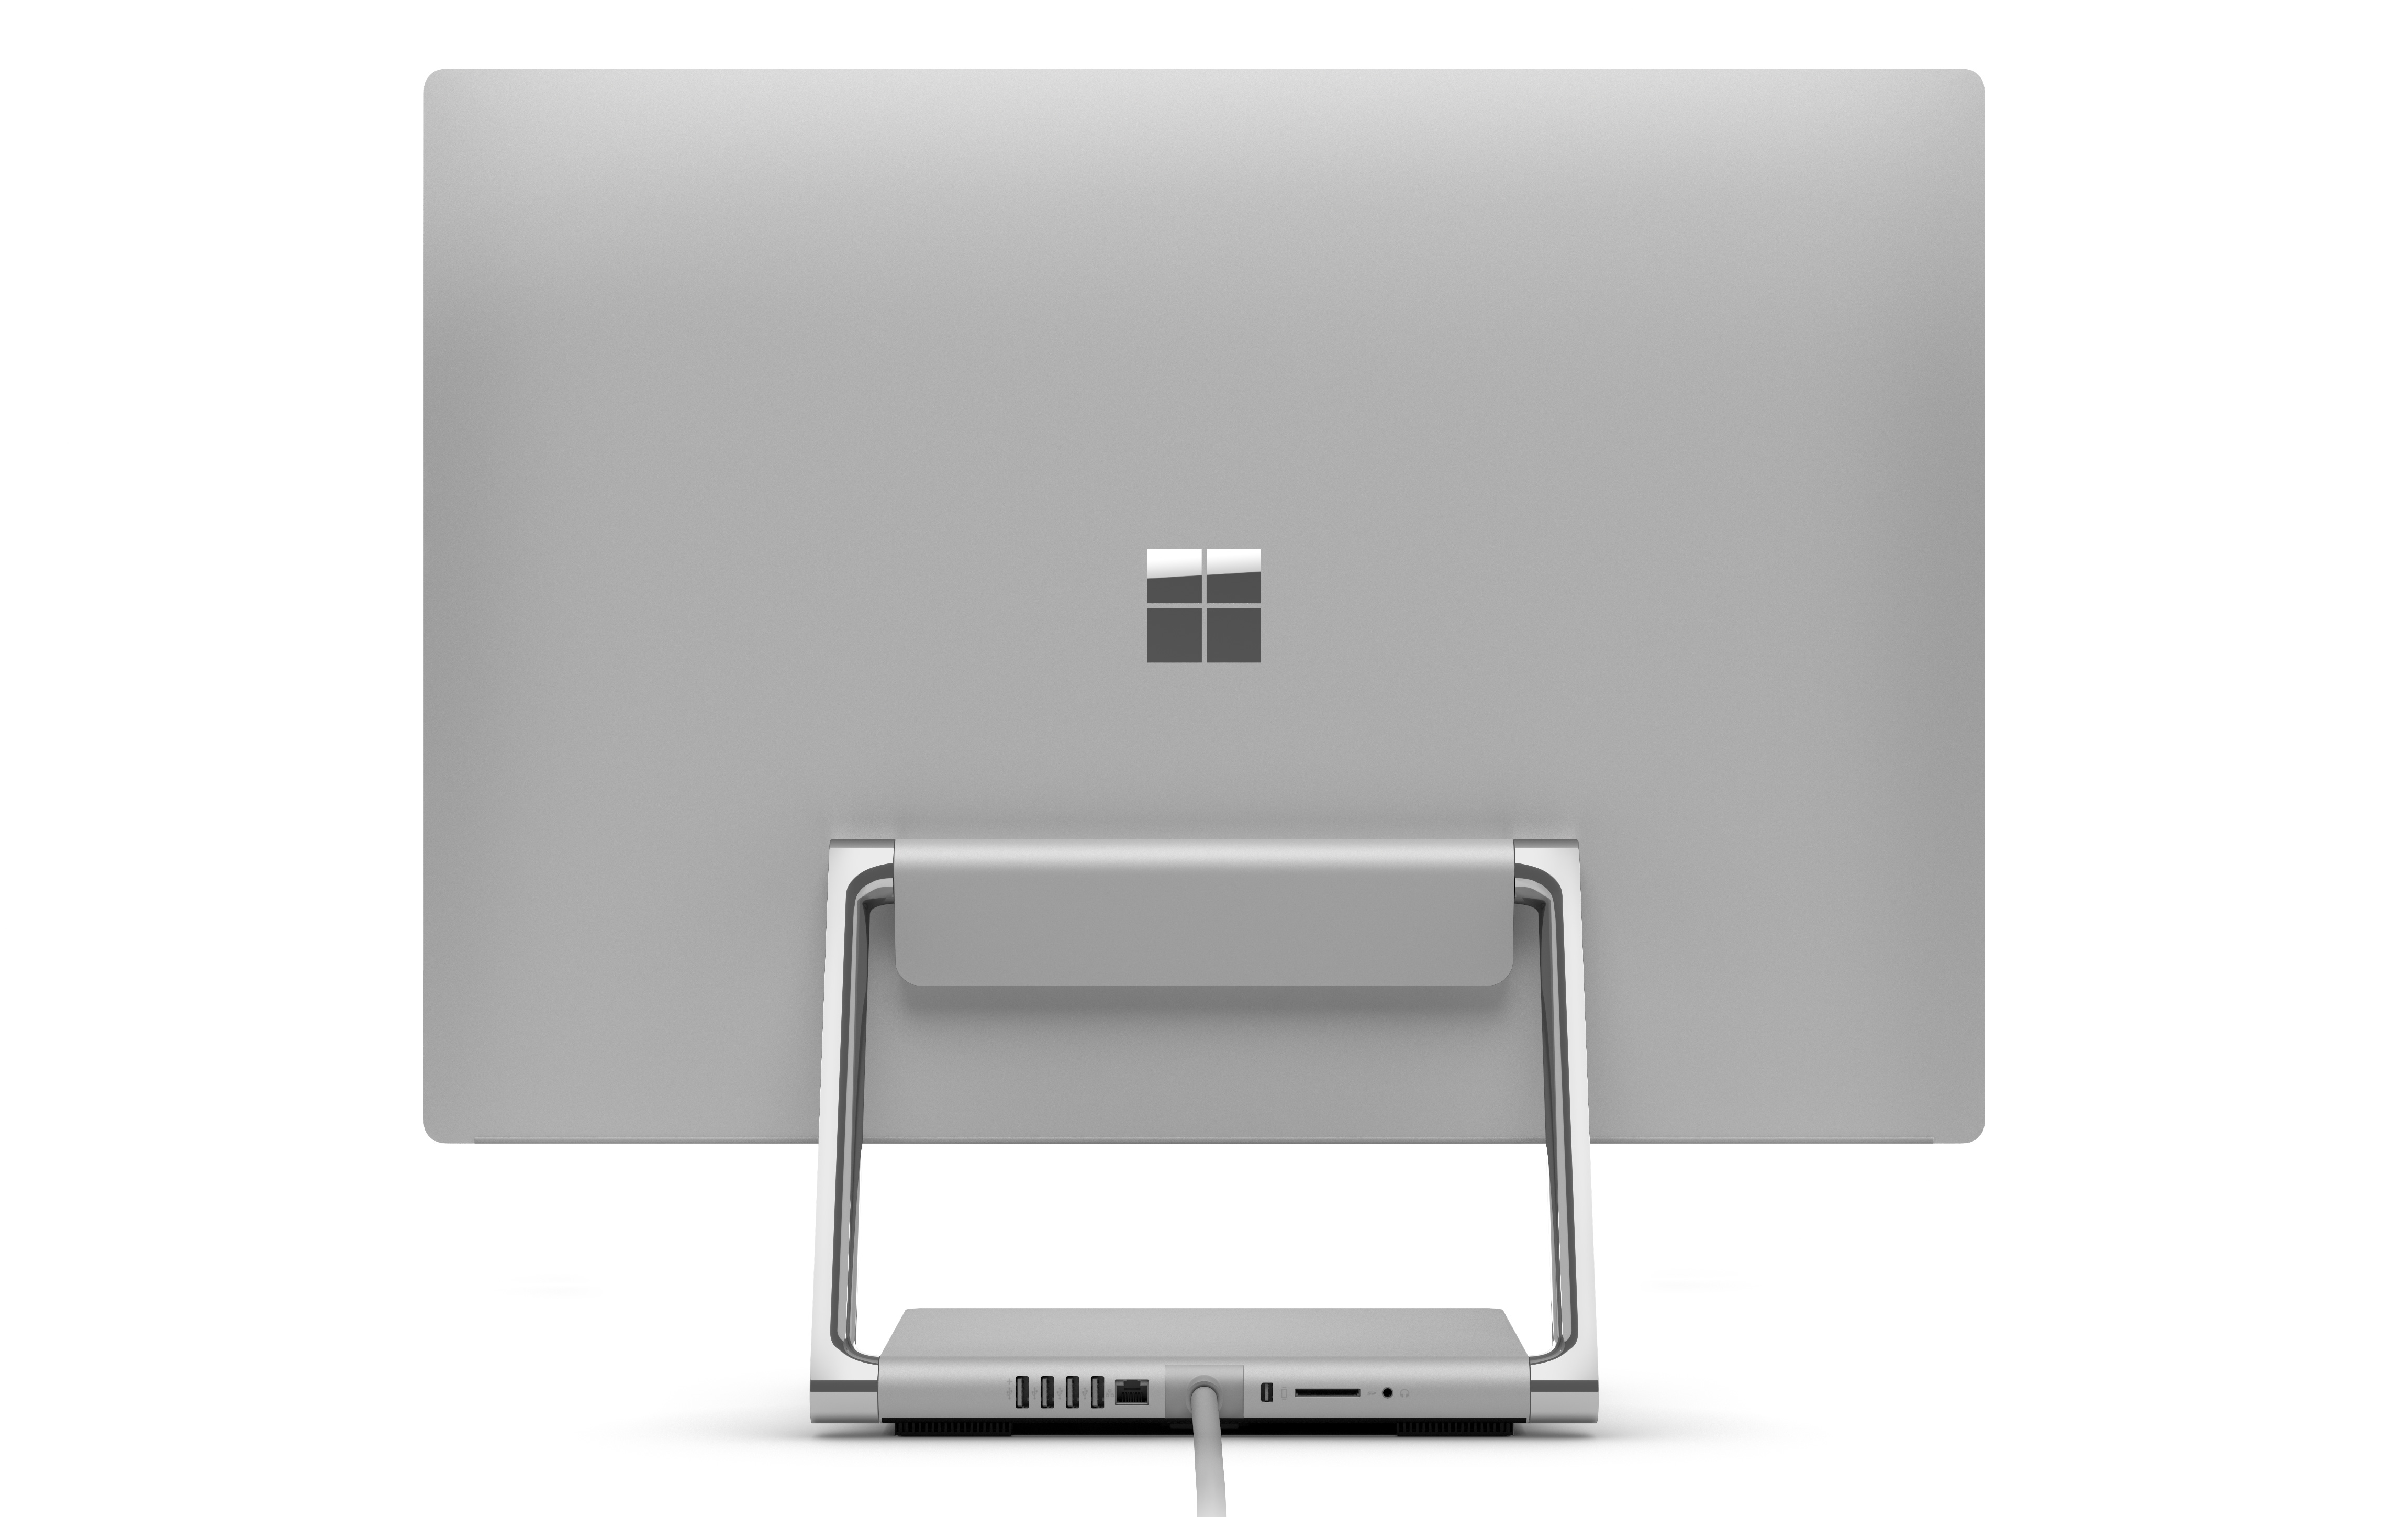 design and the zero gravity hinge the microsoft surface studio review. Black Bedroom Furniture Sets. Home Design Ideas